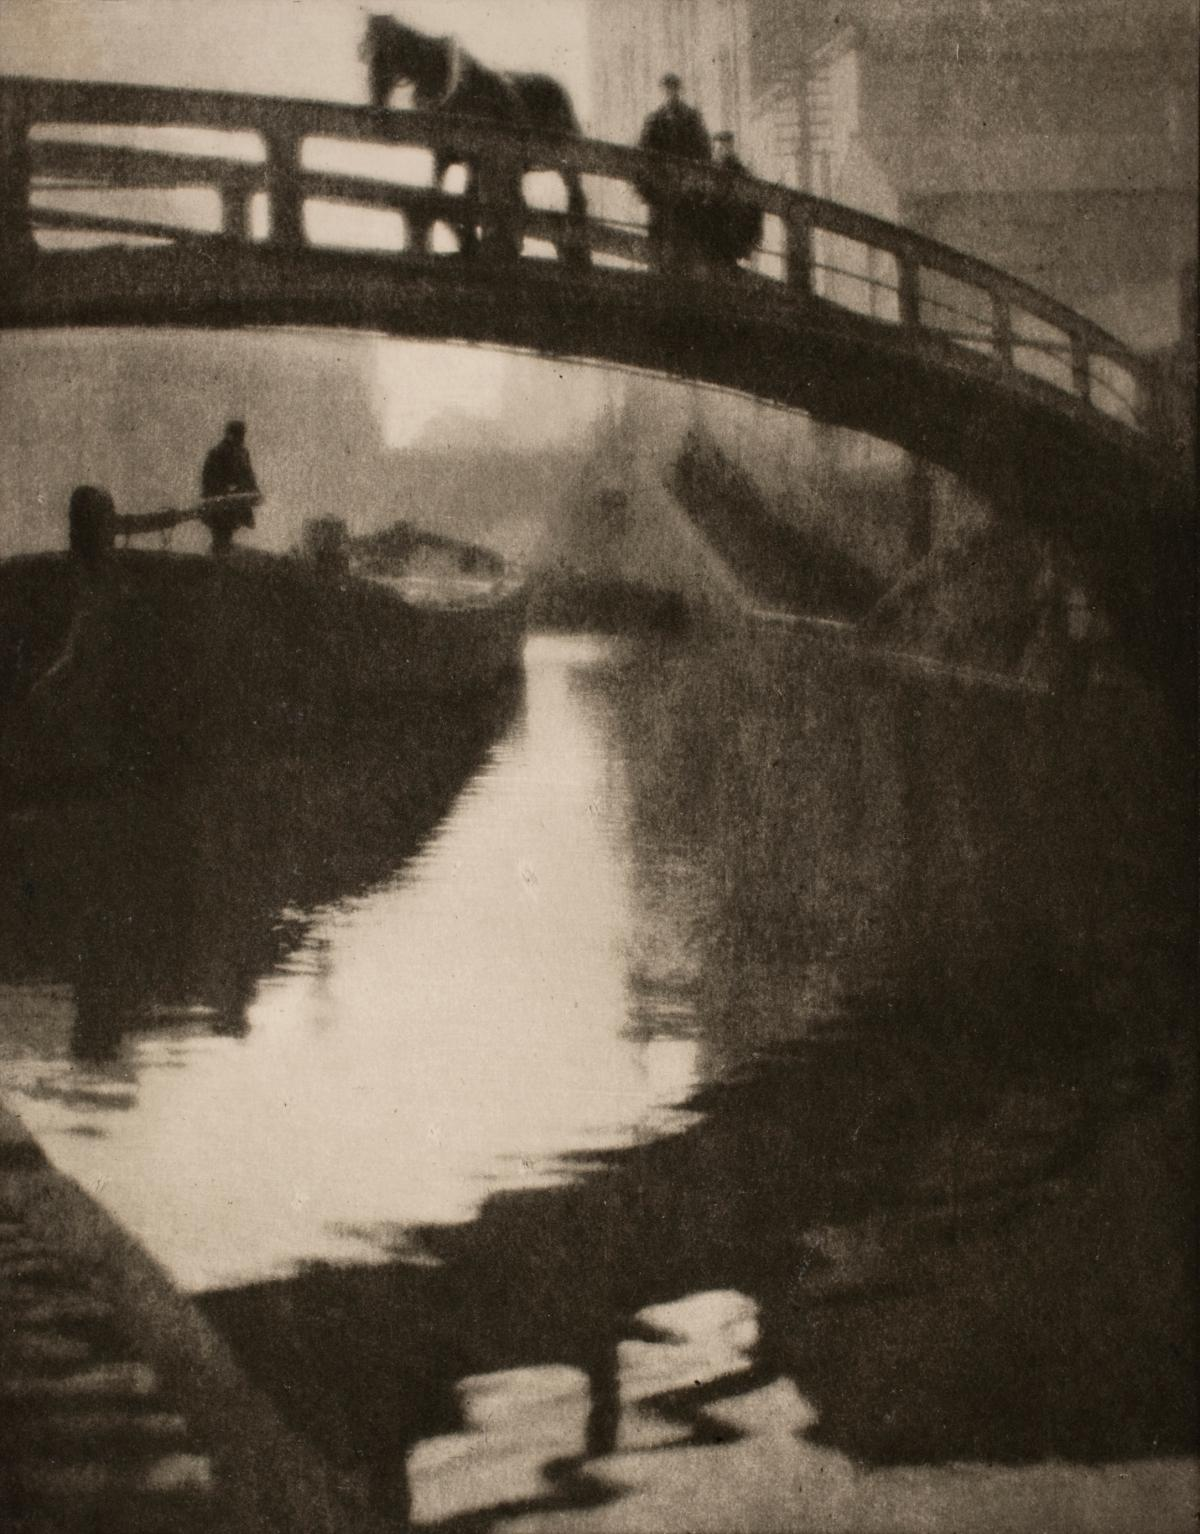 From the point of view of someone on the canal water: a bridge with a man and his horse crossing, with a boat up ahead, manned by a single figure, all in shades of black and beige